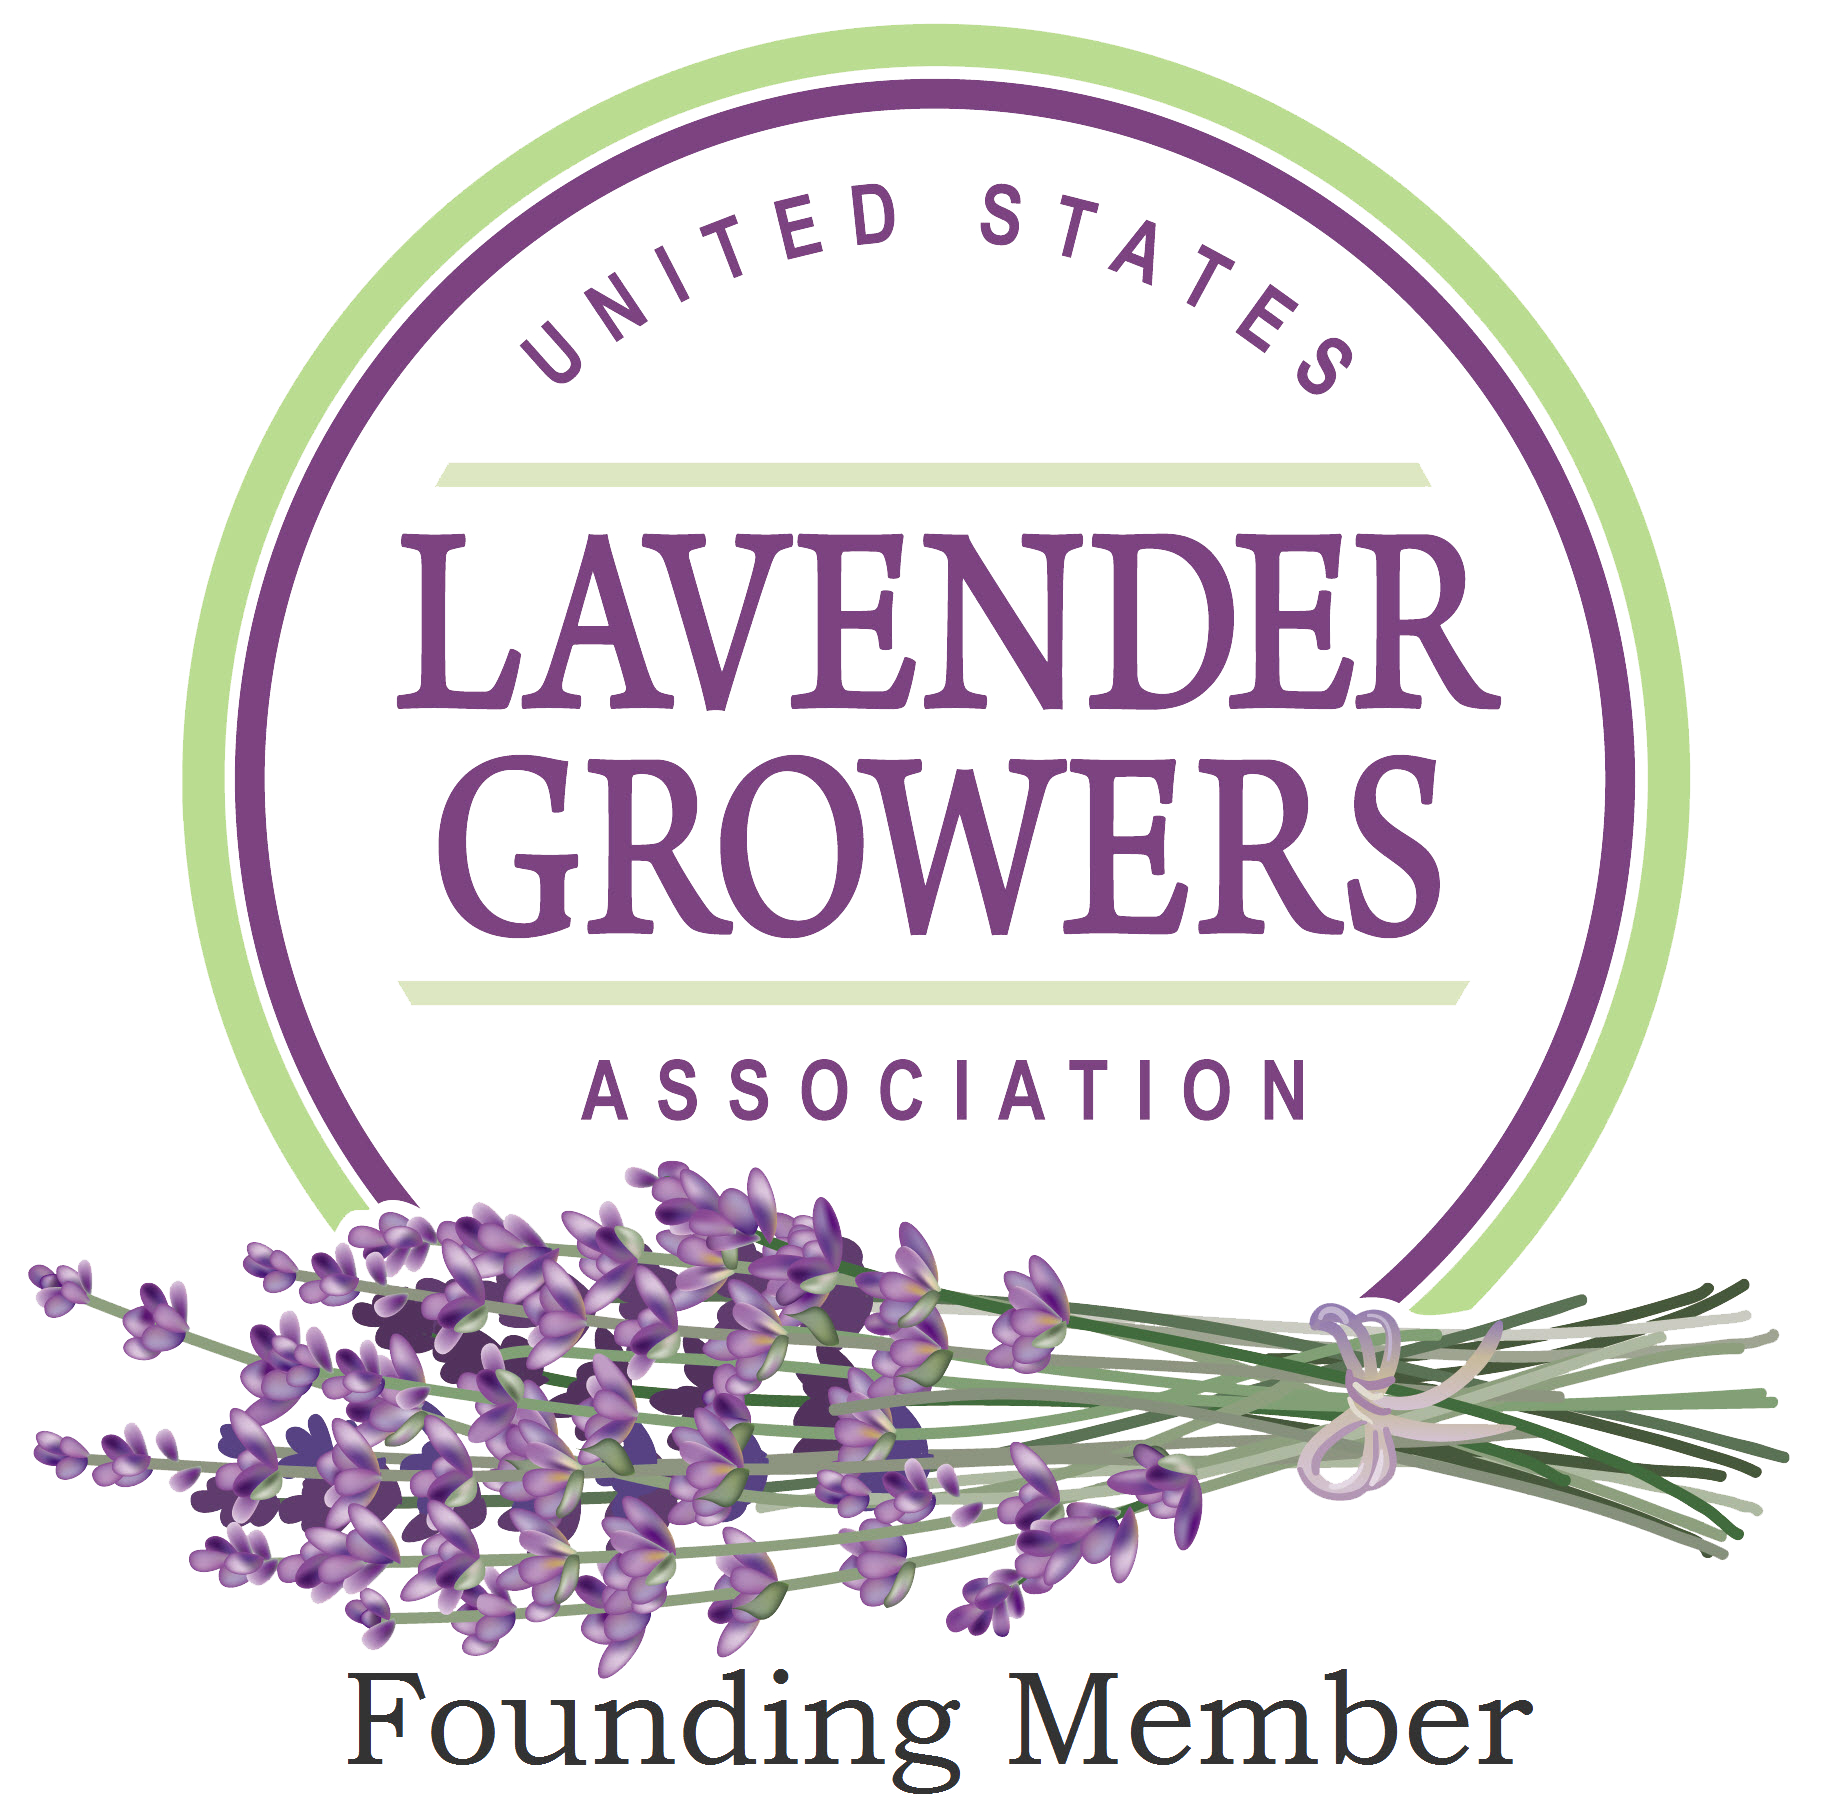 us-lavender-growers-founding-1840x1804.png